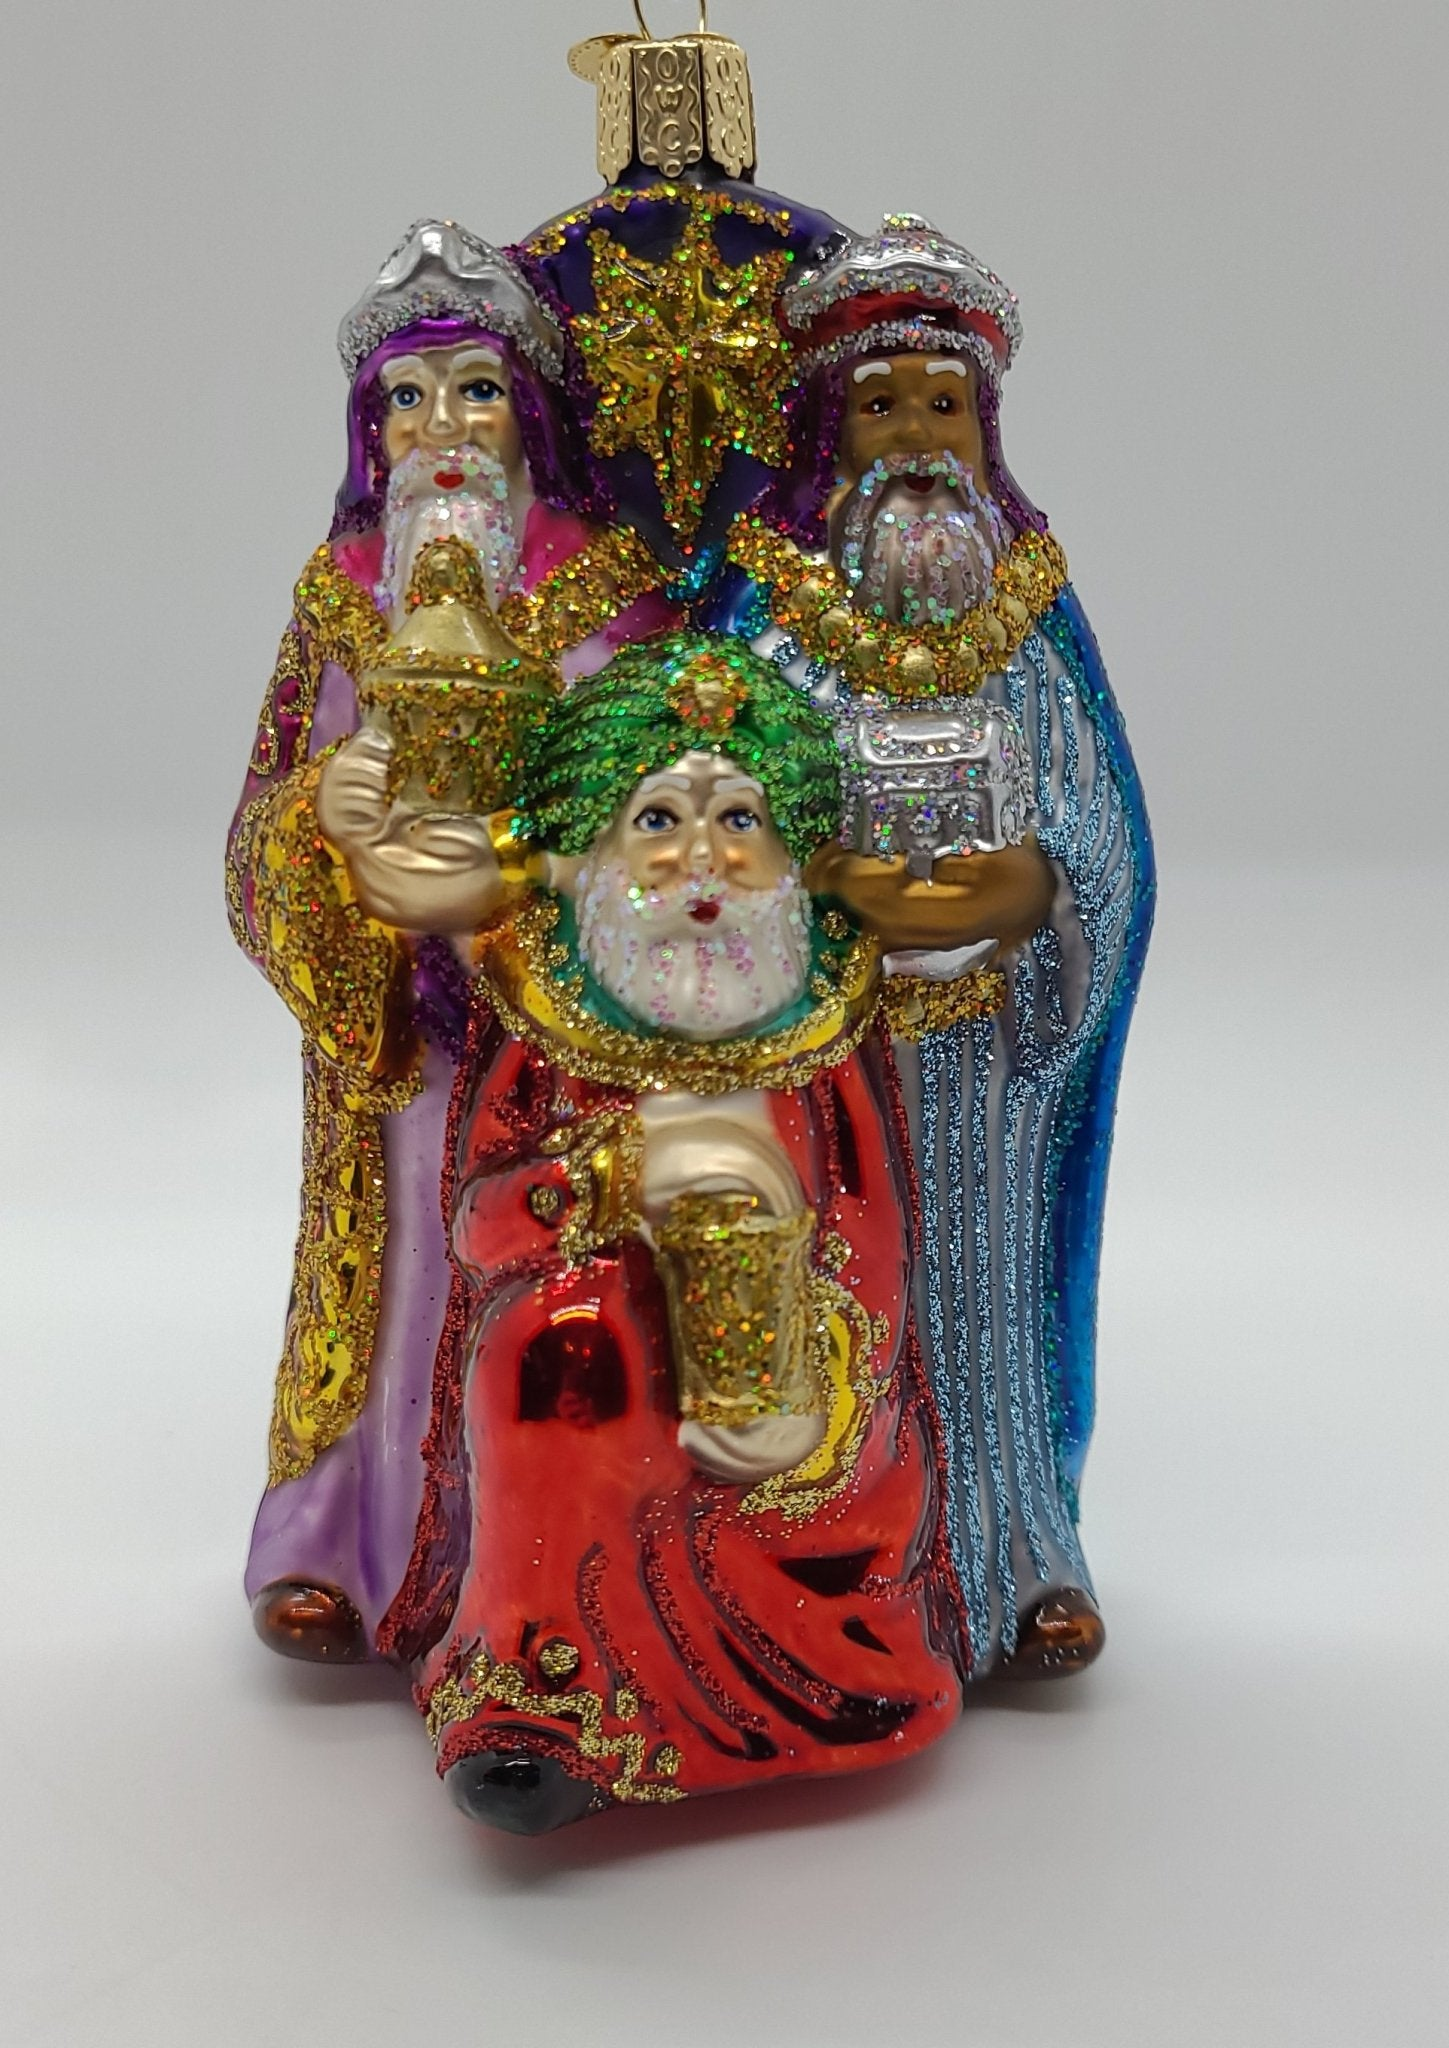 Three Wise Men - Schmidt Christmas Market Christmas Decoration